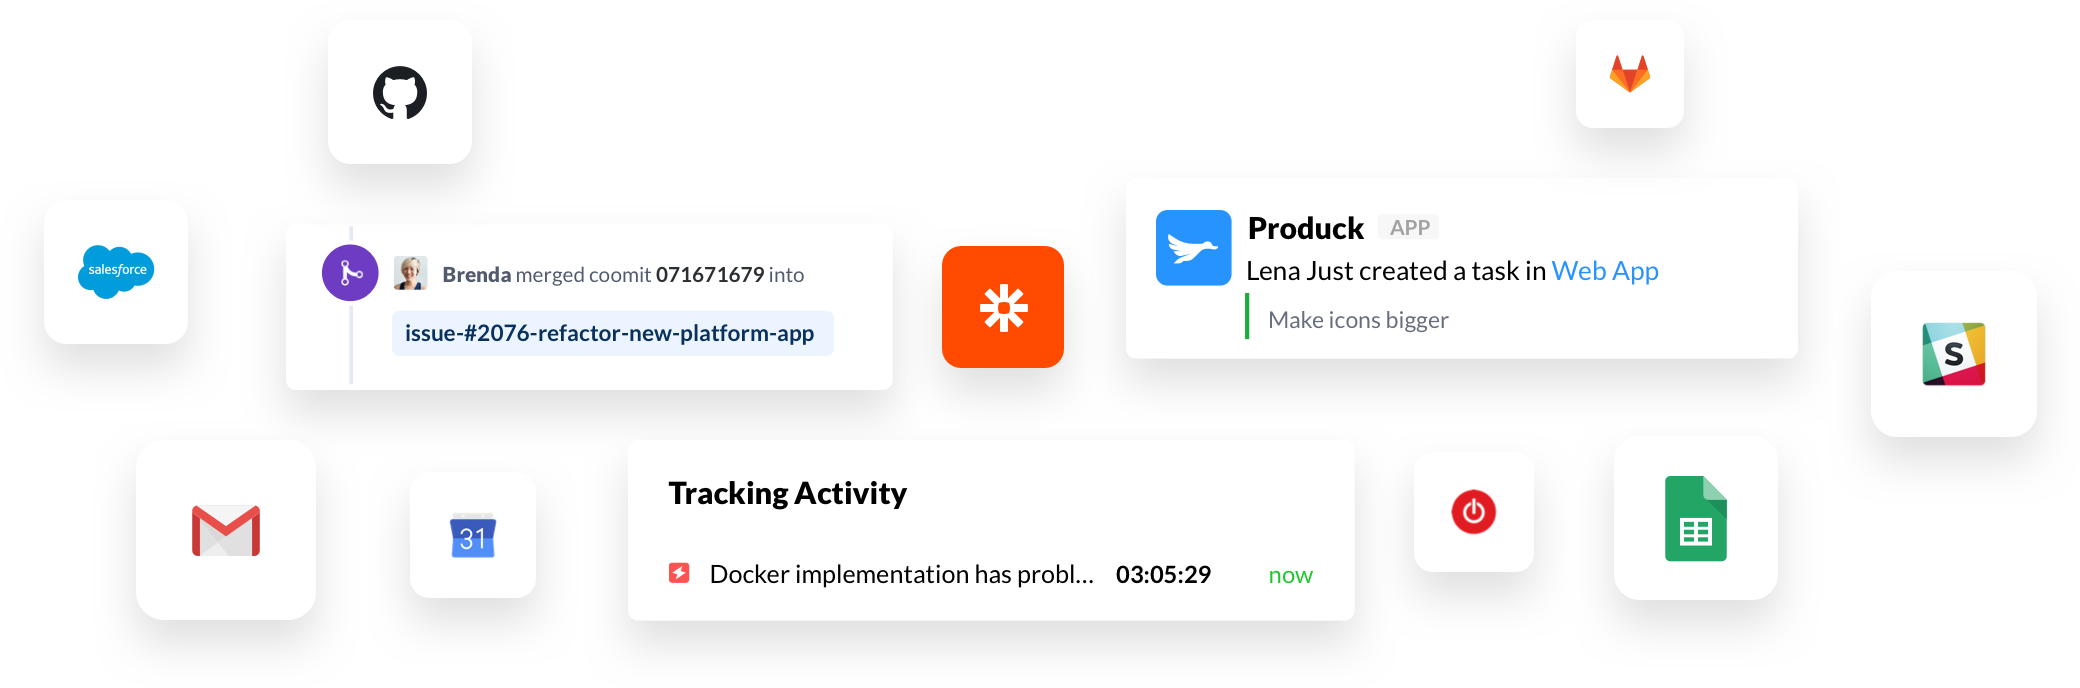 Produck Zapier Integration